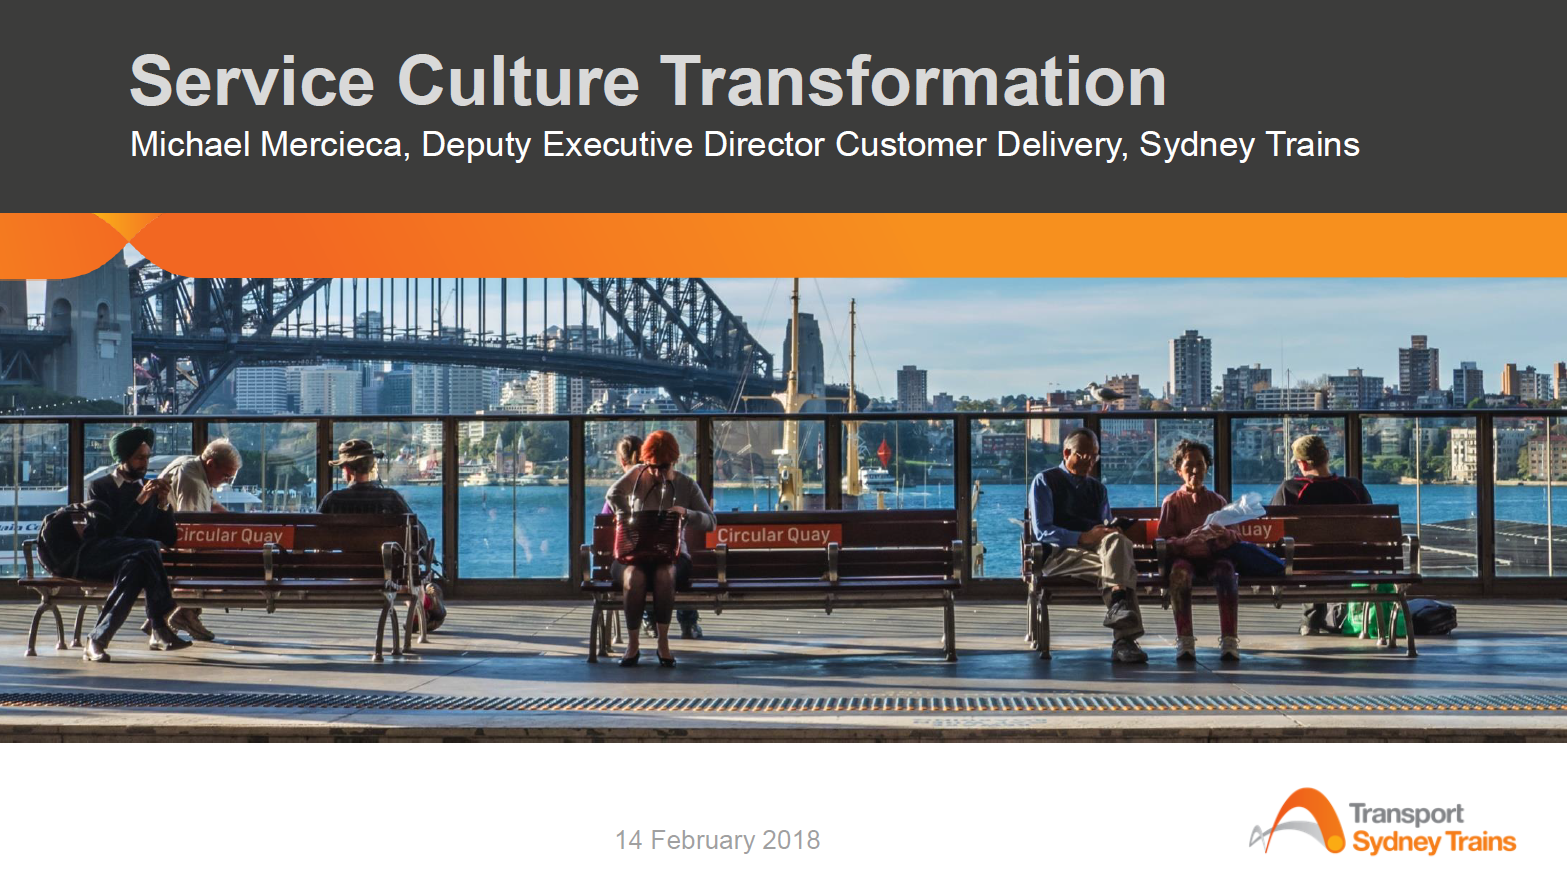 Sydney Trains' Transition from Engineering Based Service Delivery to Customer-Centric Service Delivery